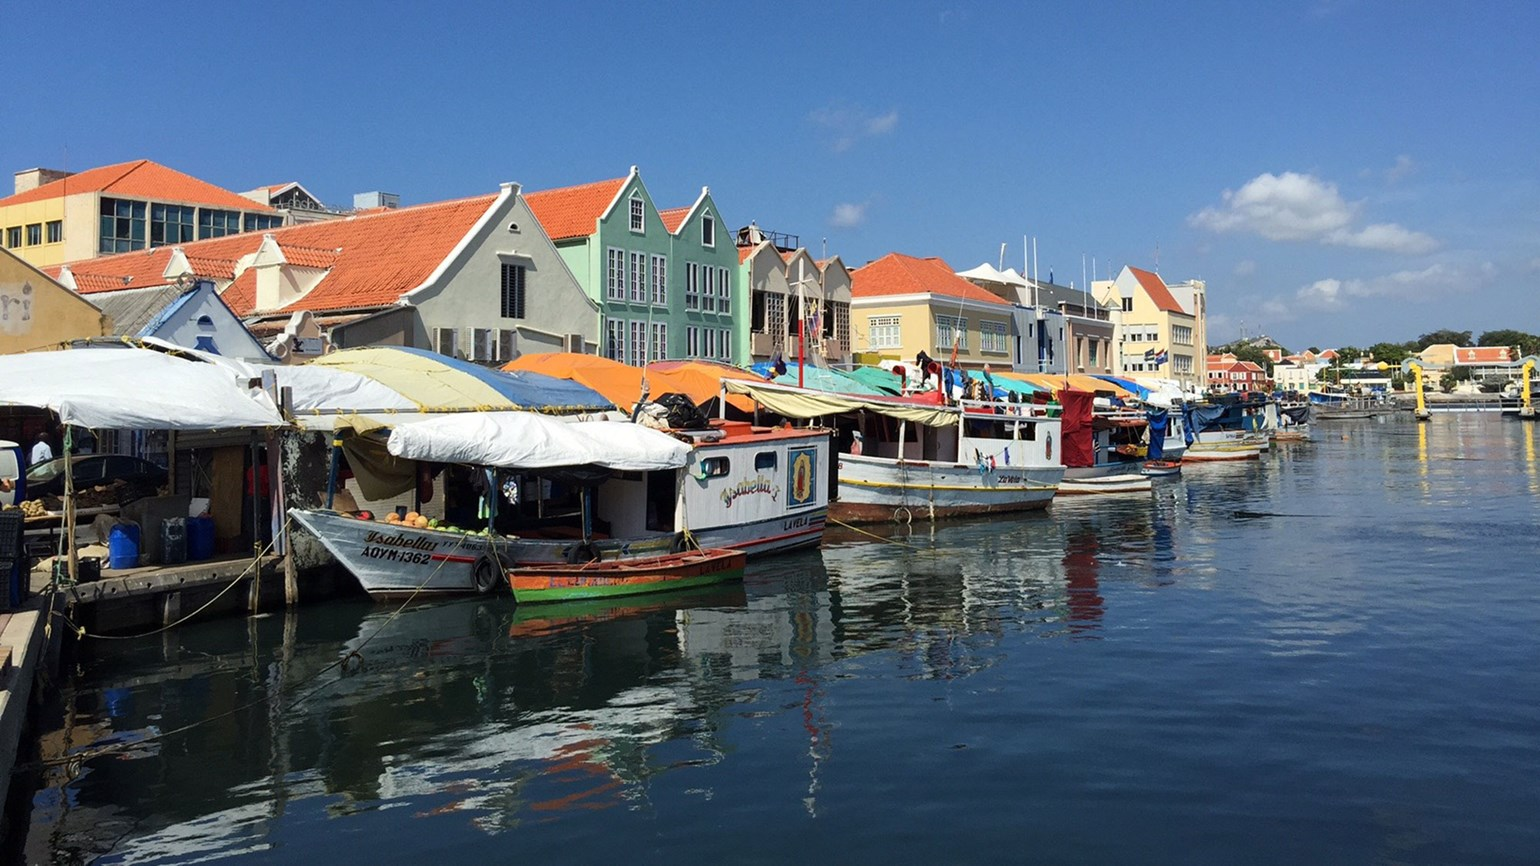 Arrivals on an upswing in Curacao